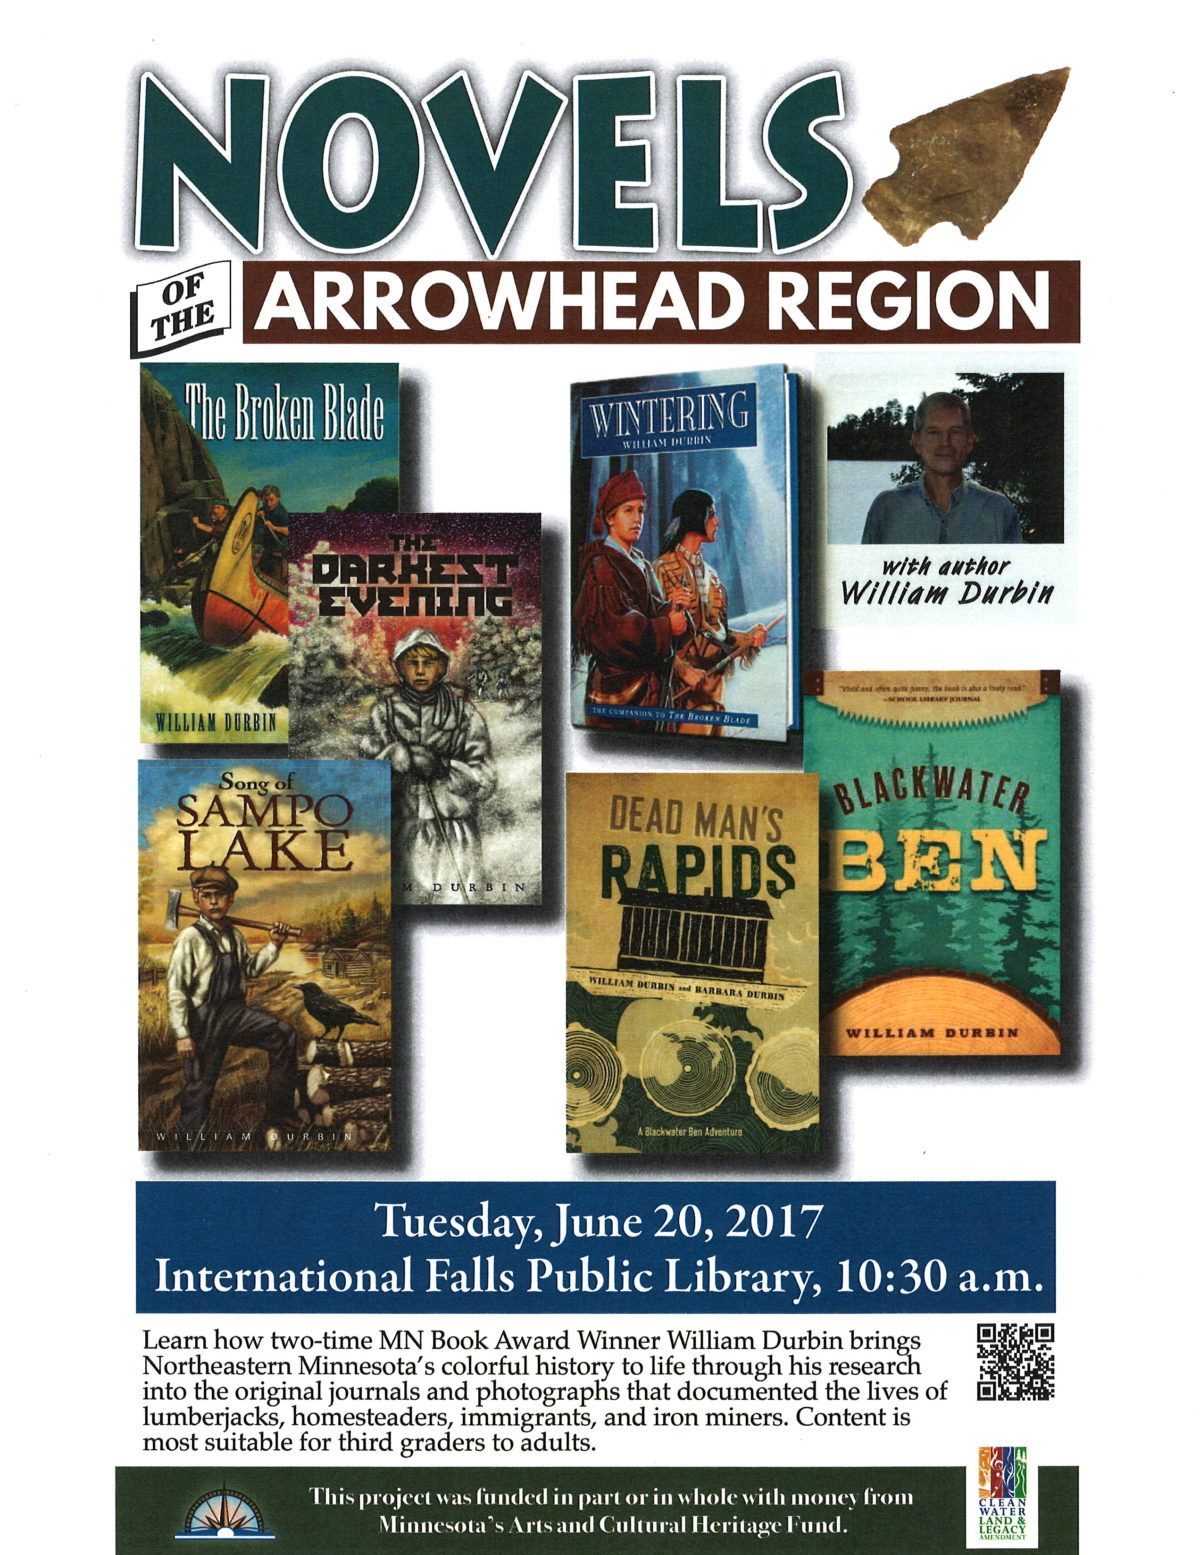 Novels of the Arrowhead Region